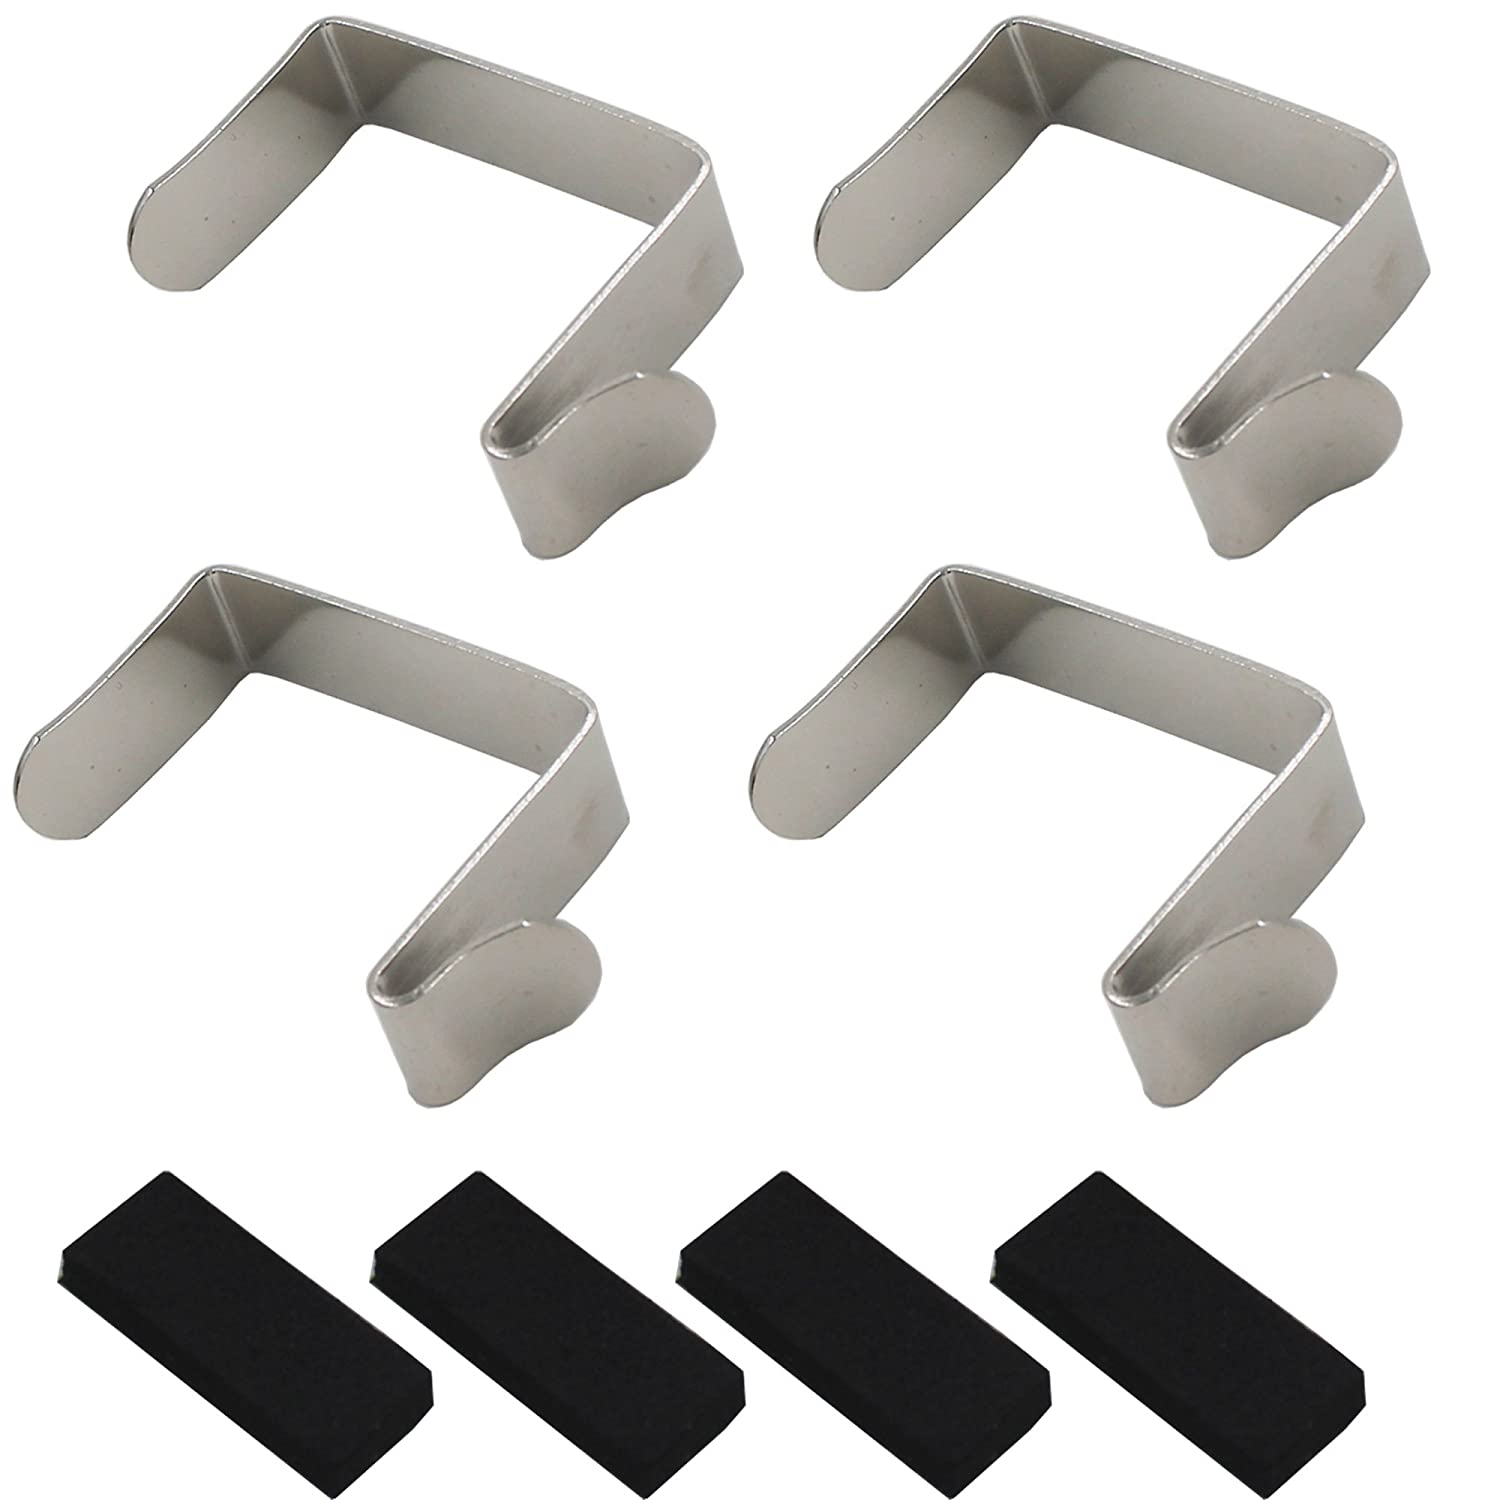 YYST Over Door Hooks Shoe Organizer Hooks Fit up to 1 3 4 inch Door Nickel Steel 4 PK